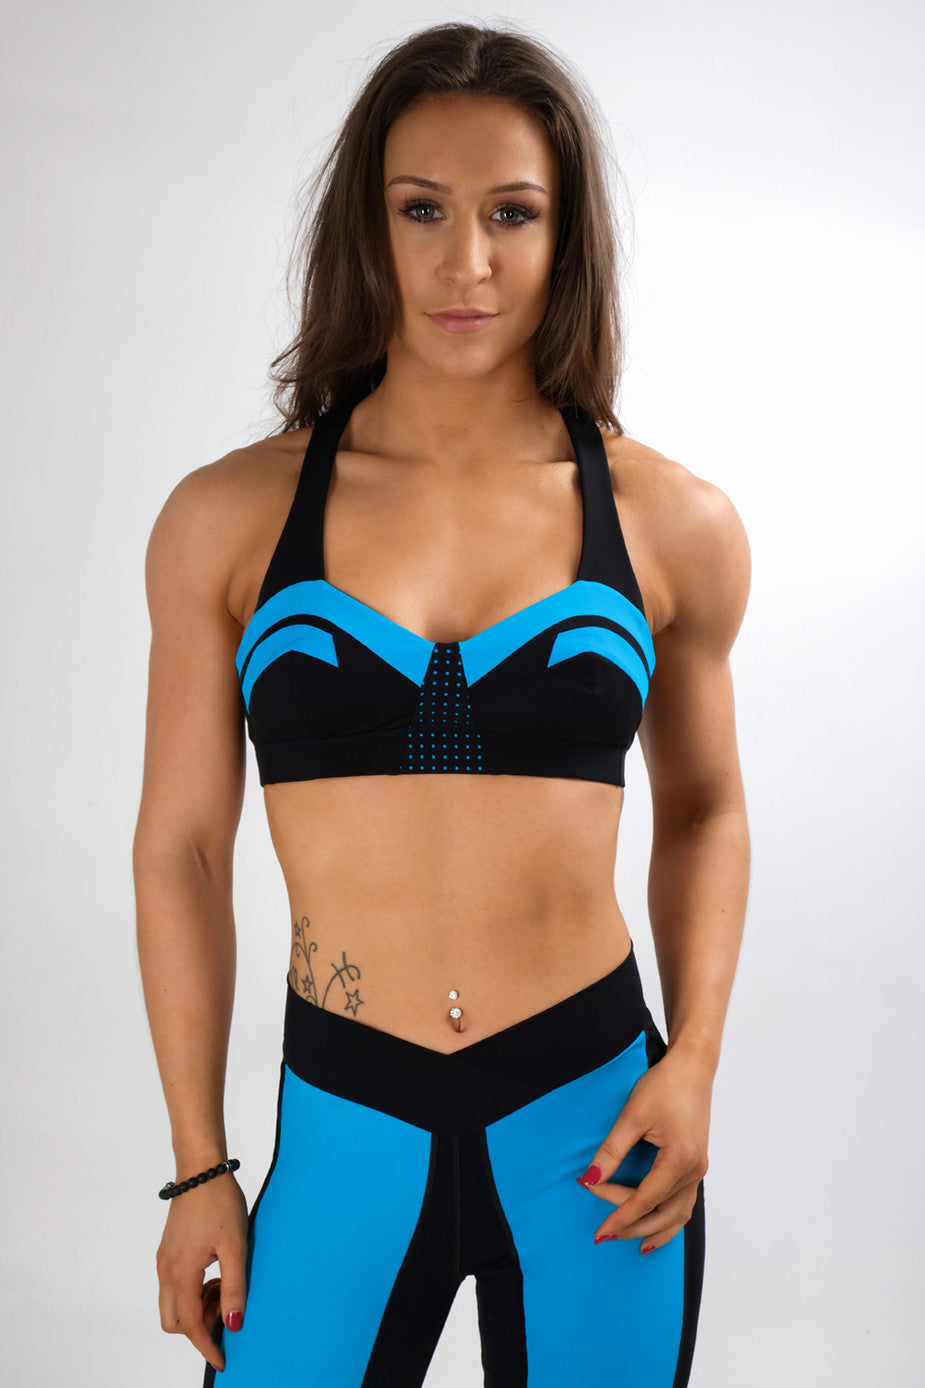 Feminum Mystique Sports Bra